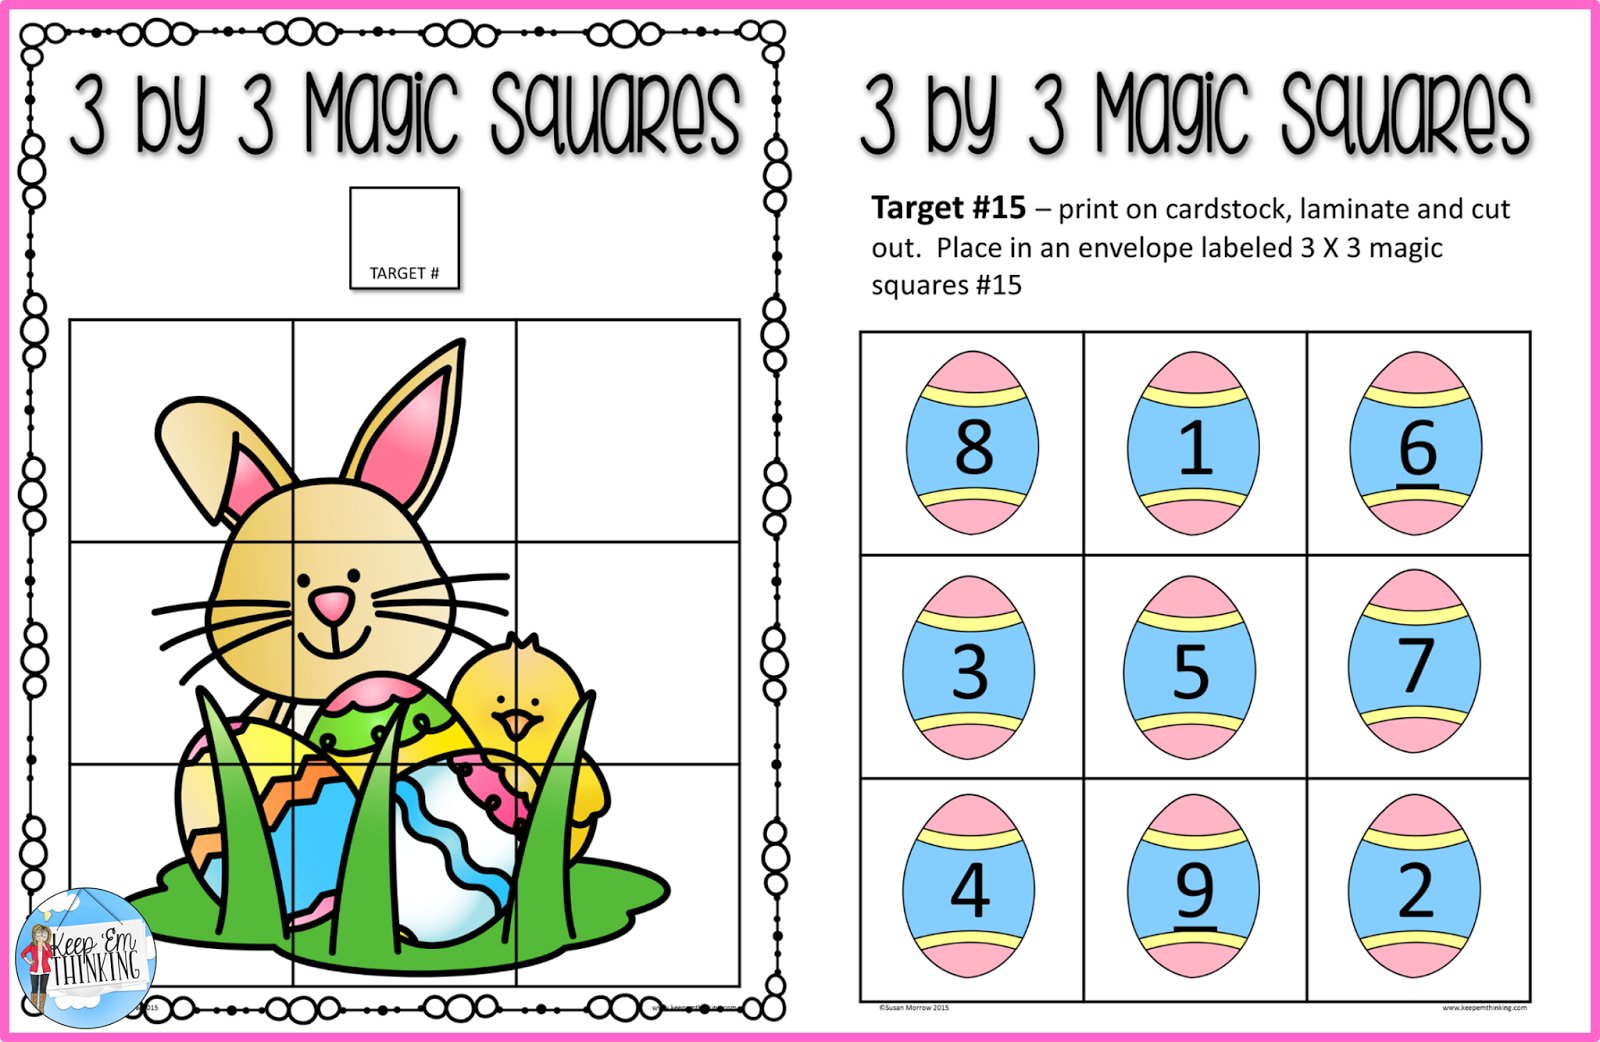 https://www.teacherspayteachers.com/Product/Easter-Beginning-Logic-Puzzles-and-Activities-1783106